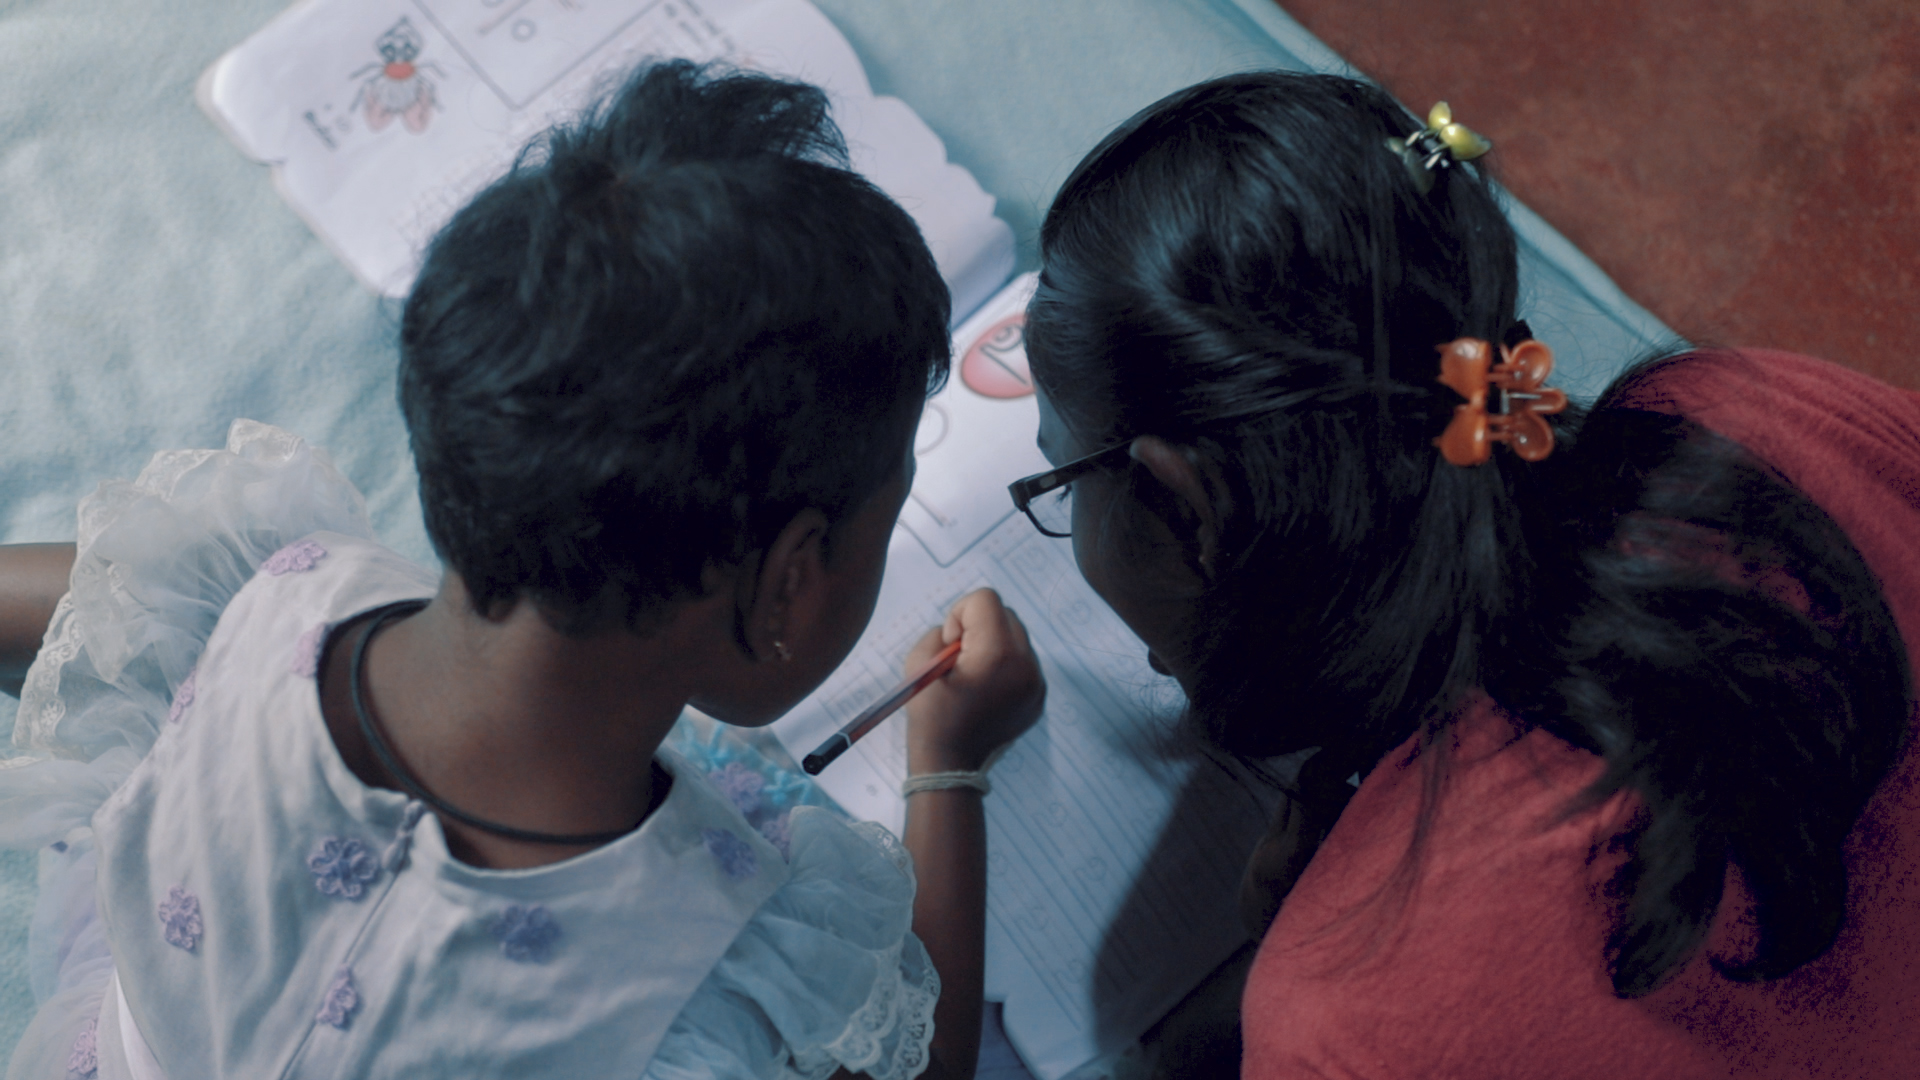 Maduwarshini learning to scribble with her sister